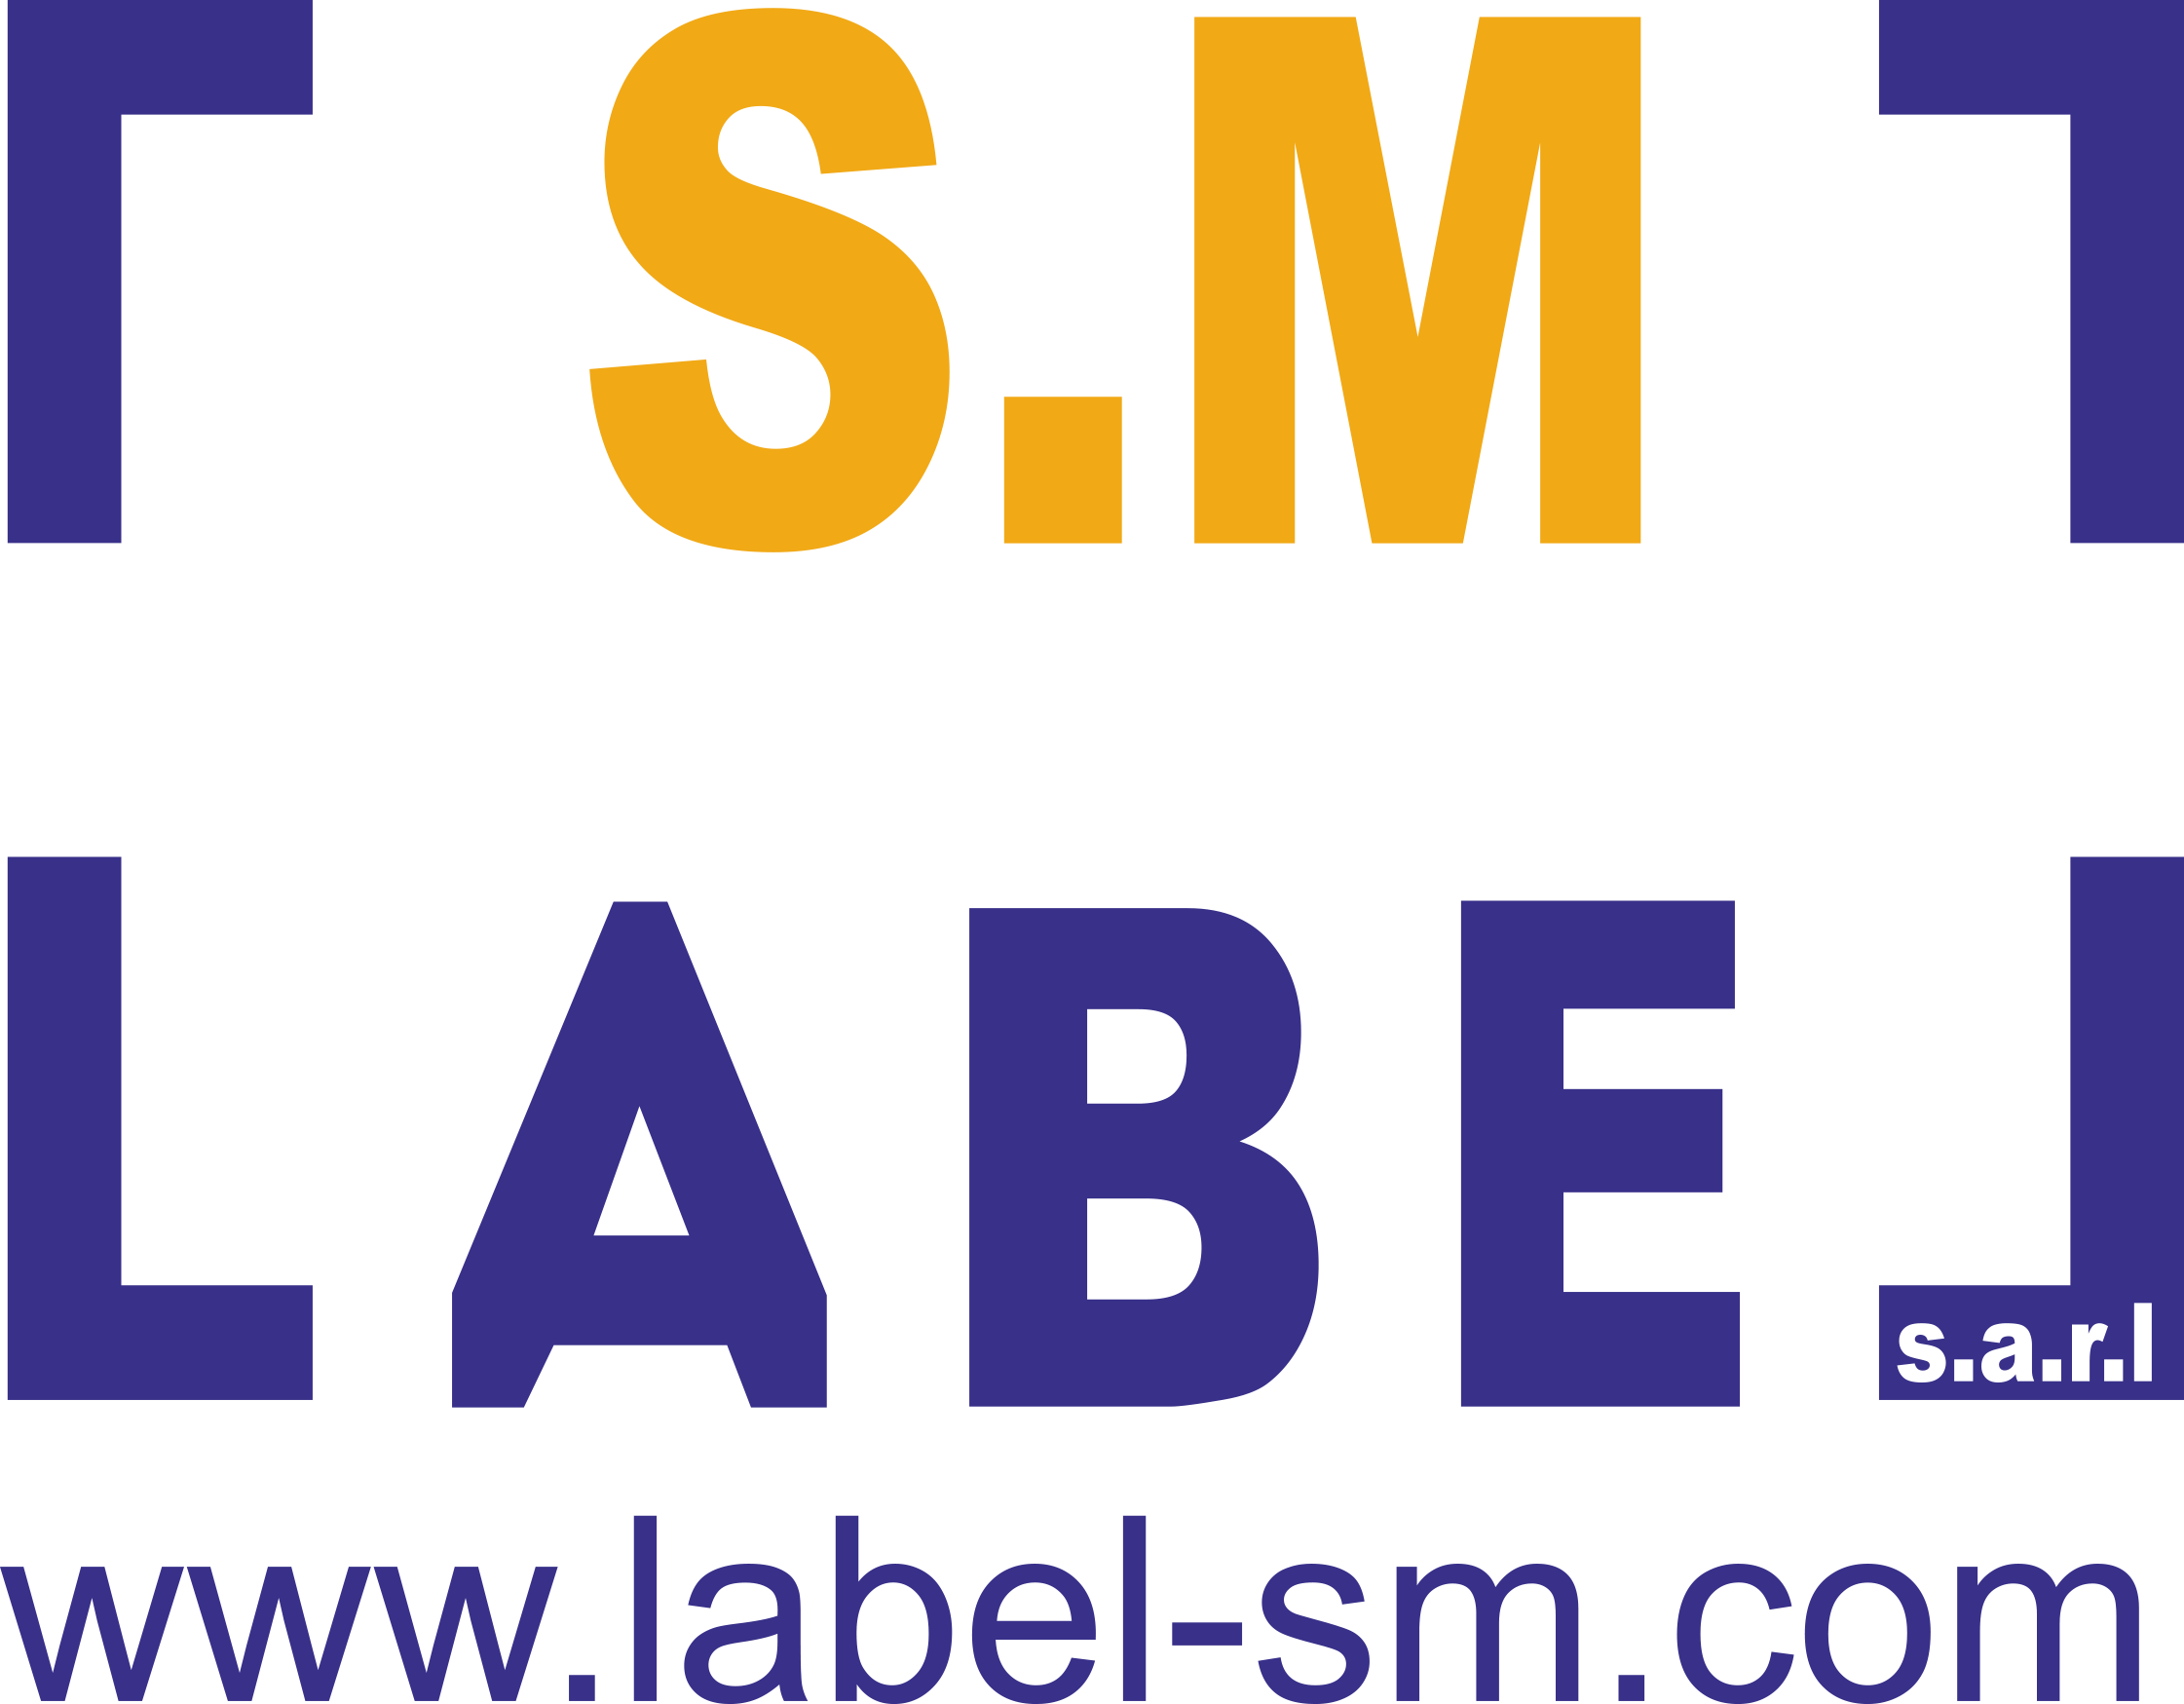 Rated r label png. Sm